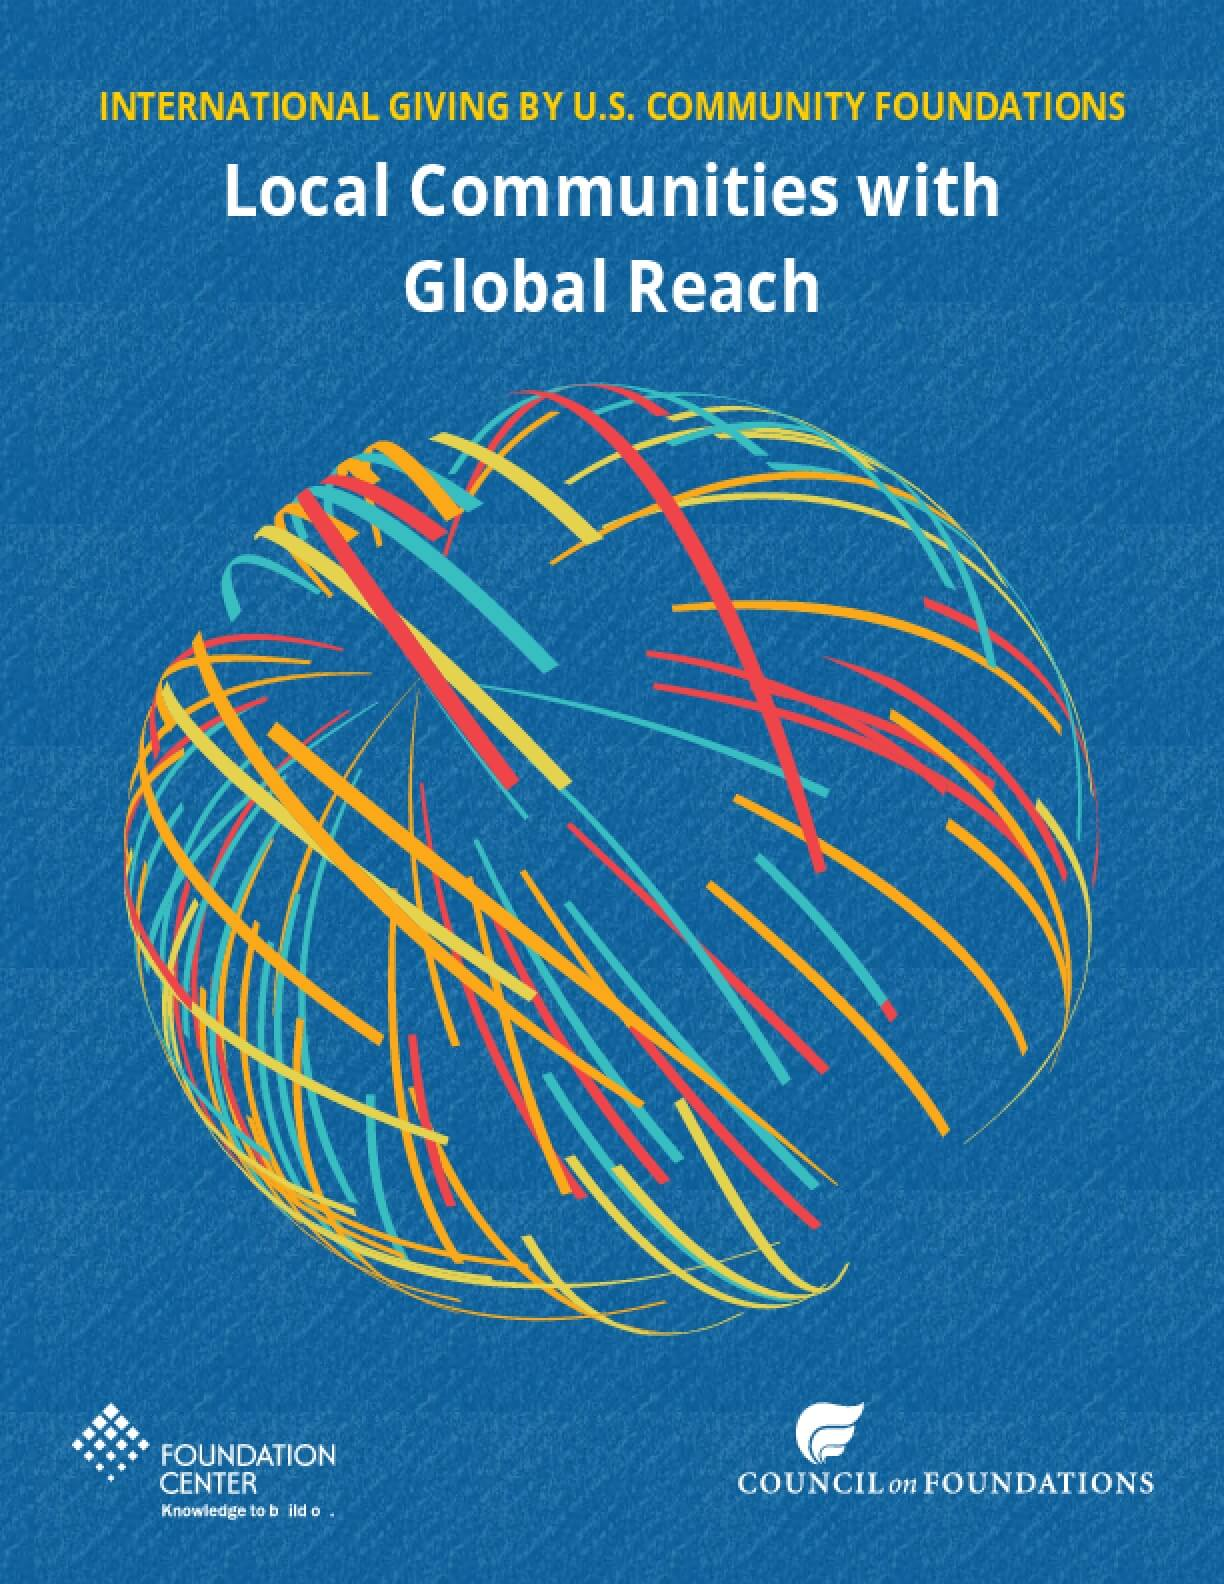 International Giving by U.S. Community Foundations: Local Communities with Global Reach